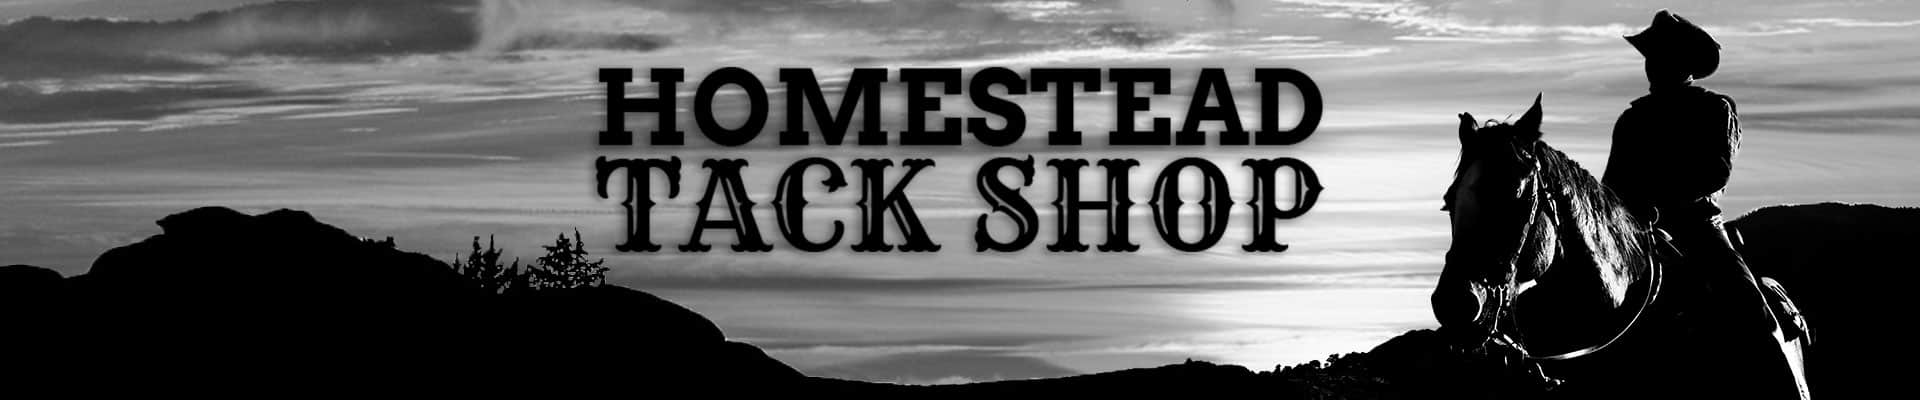 The Homestead Tack Shop